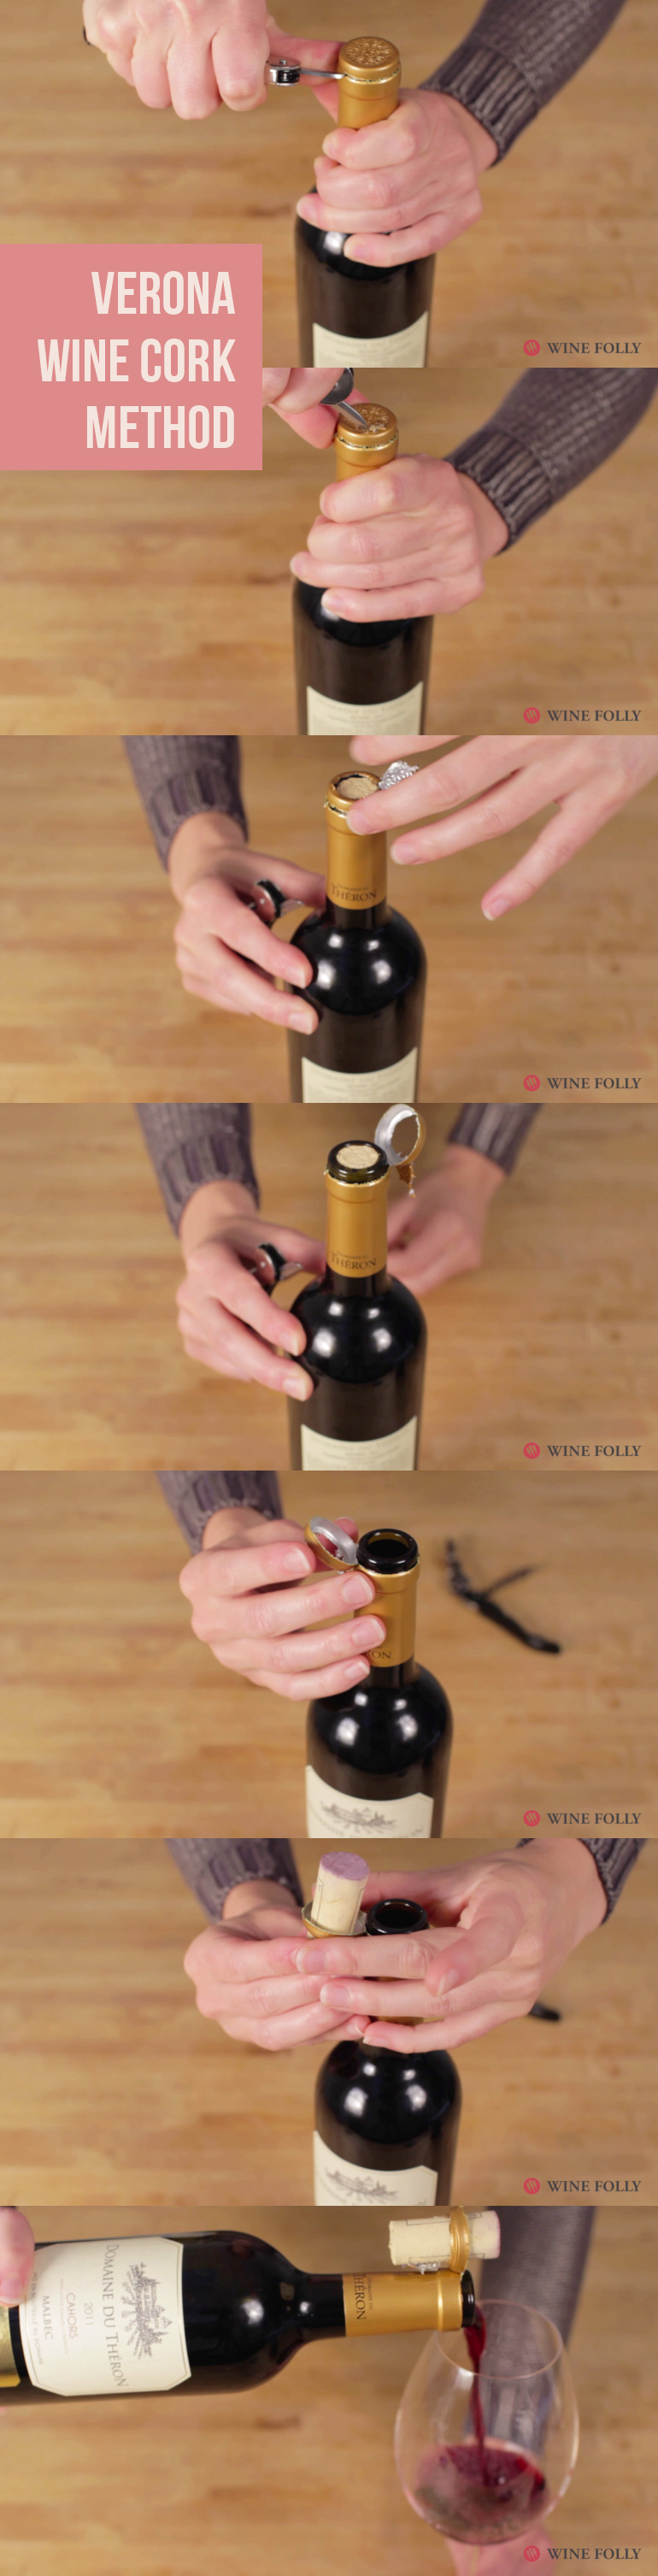 Veronese wine cork trick by Wine Folly